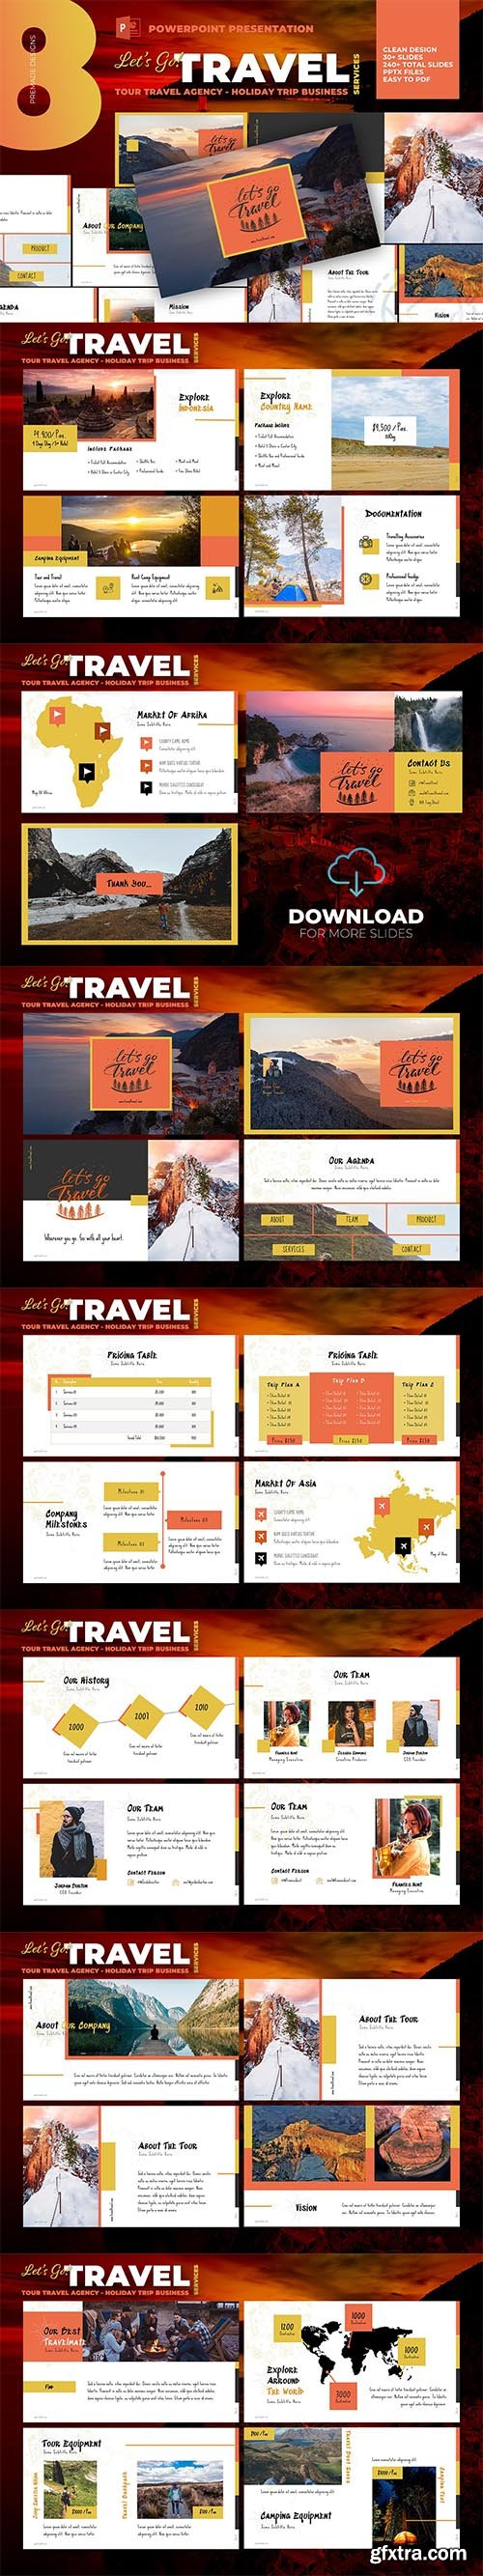 Tour Travel Agency Powepoint Template